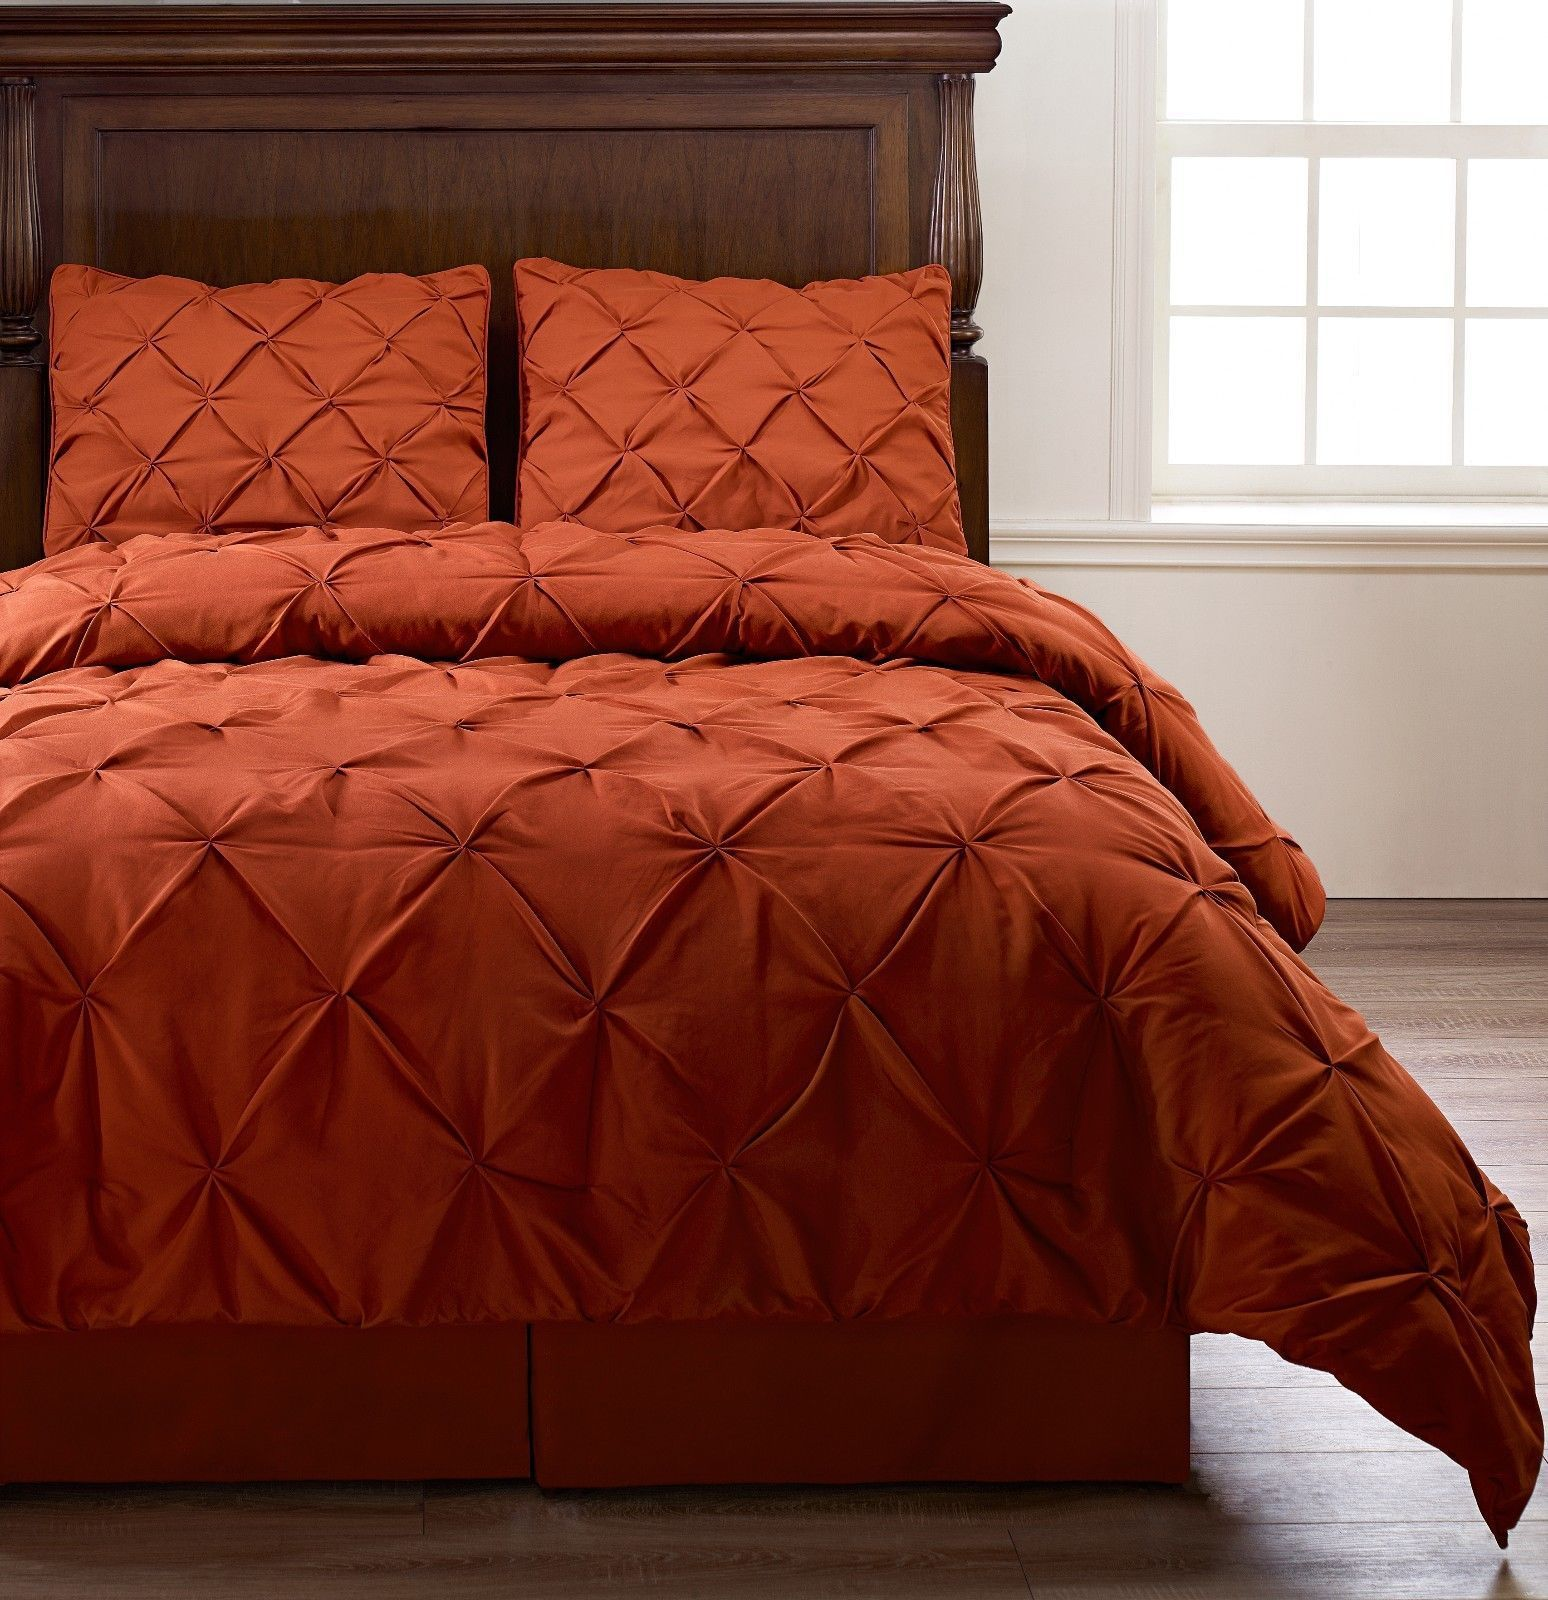 Burnt Orange Comforter set | Orange bedding, Comforter sets